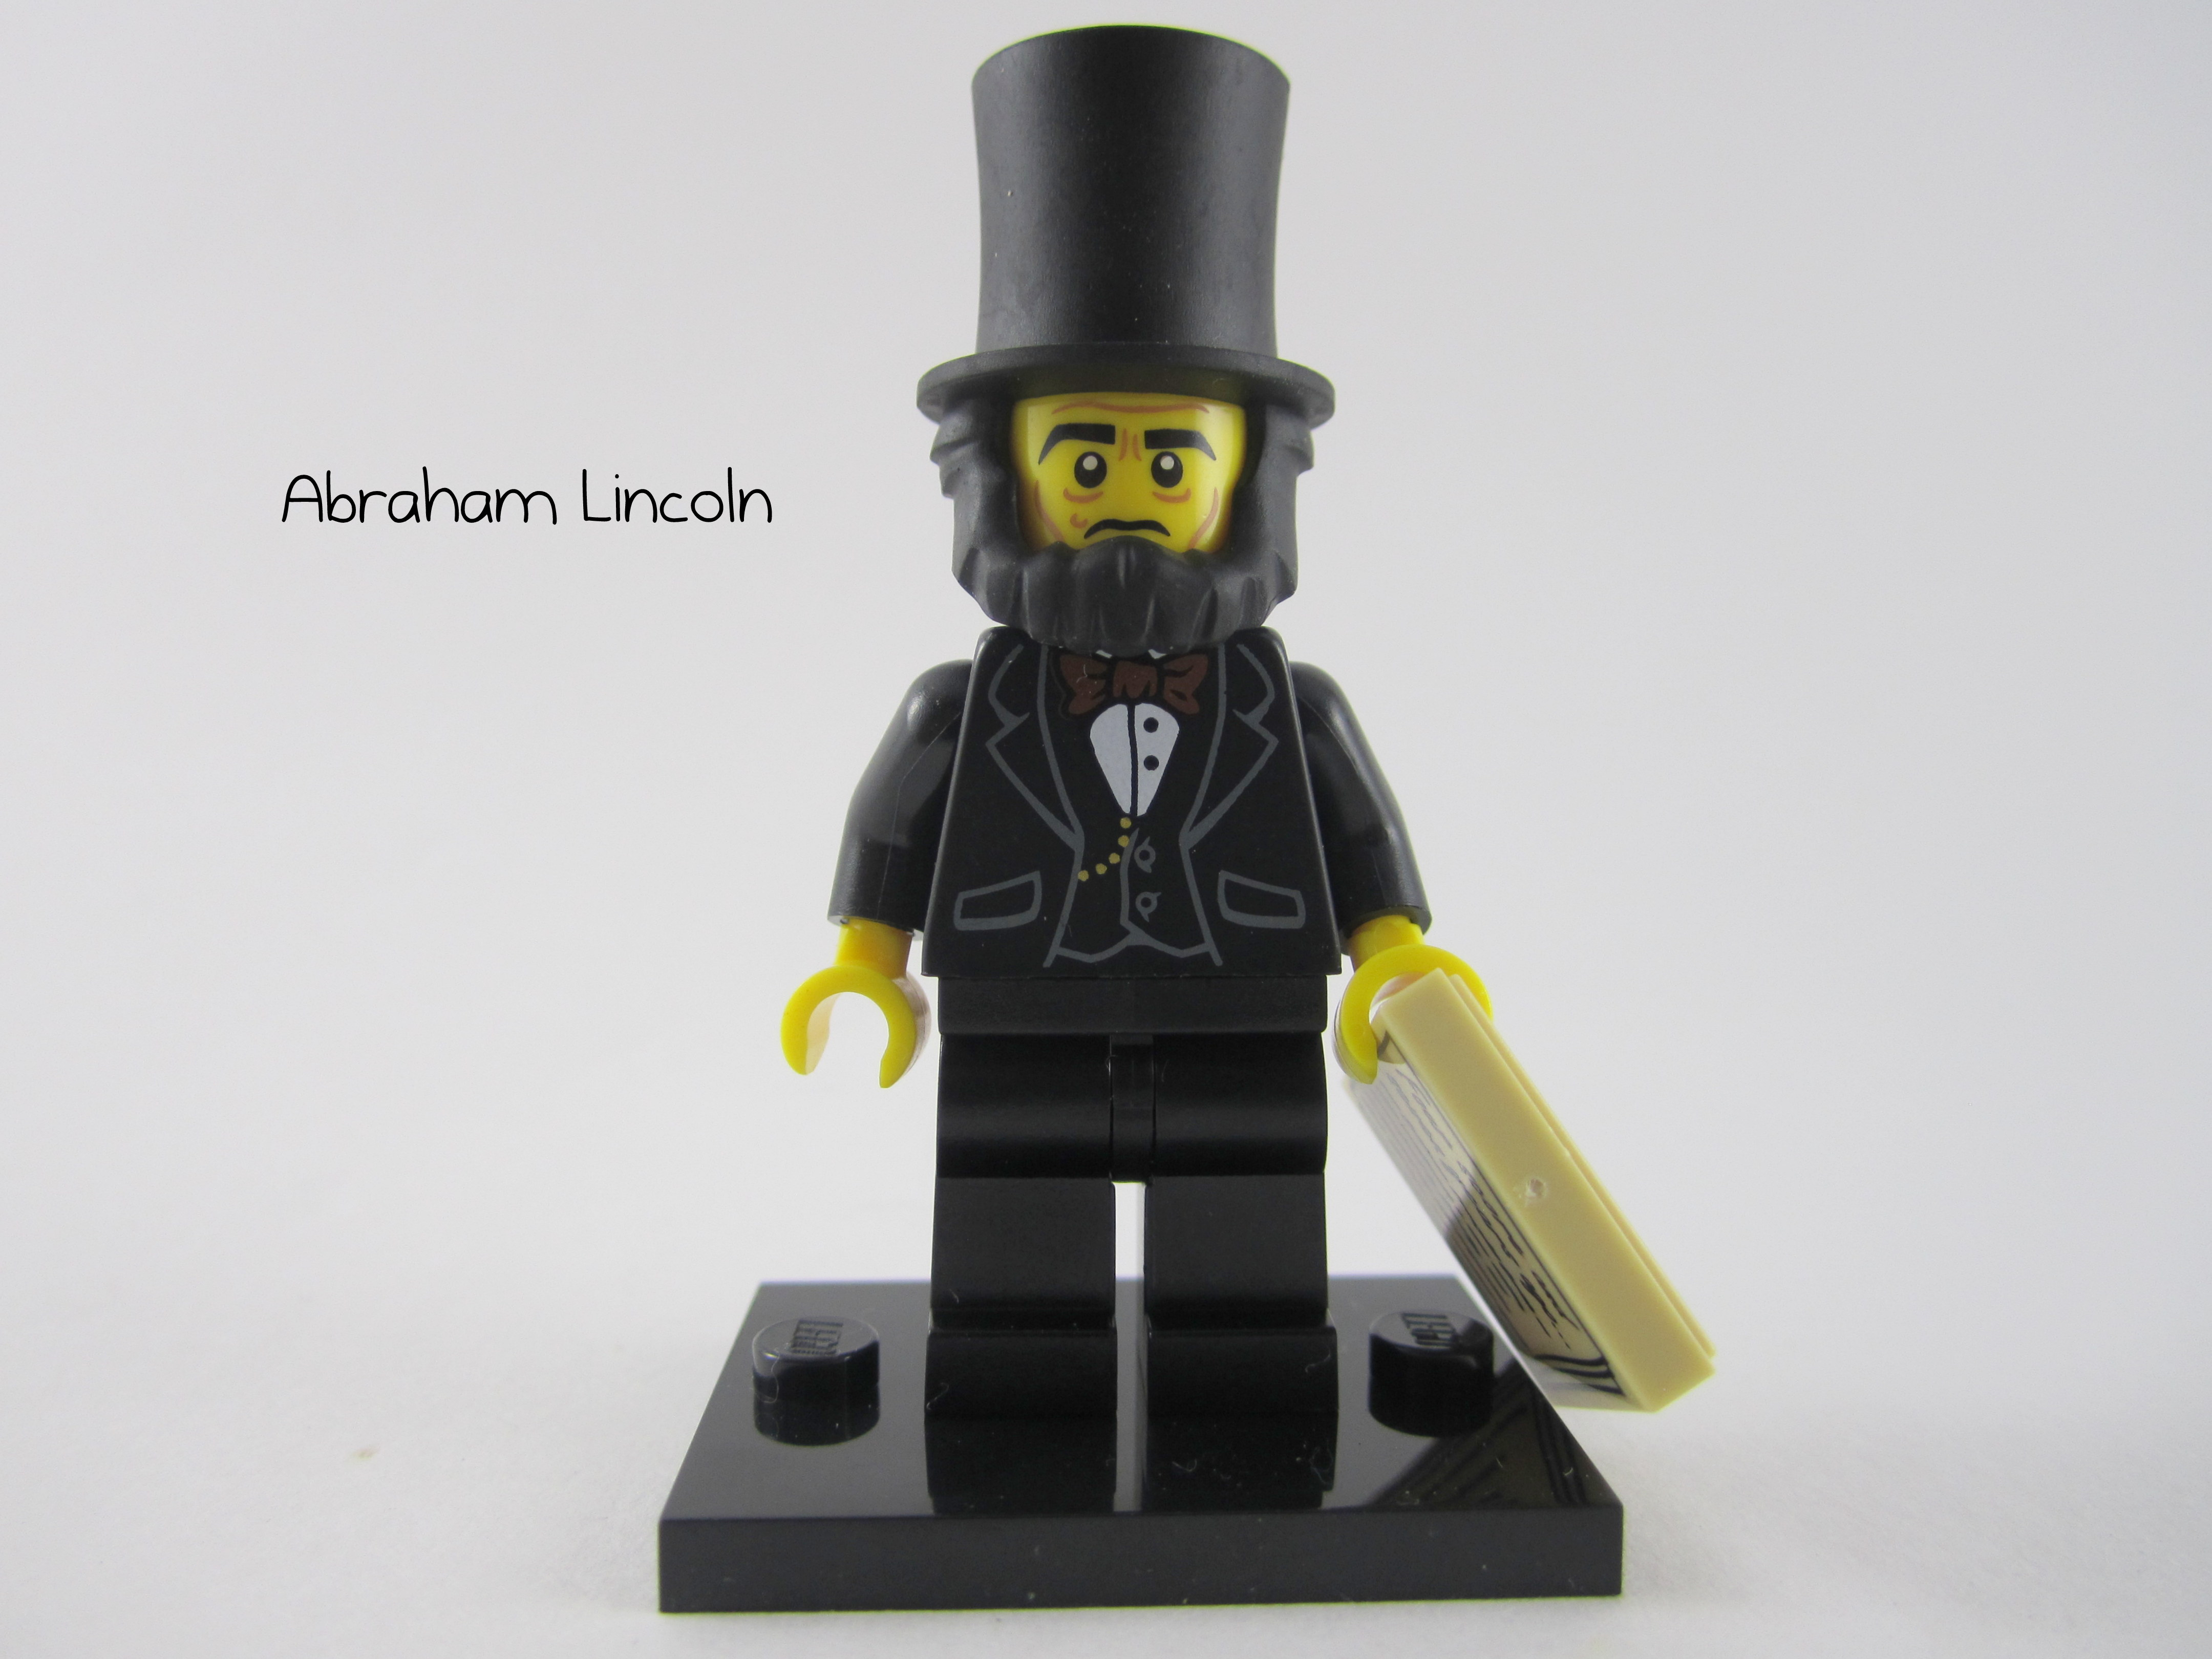 Abraham Lincoln Minifig